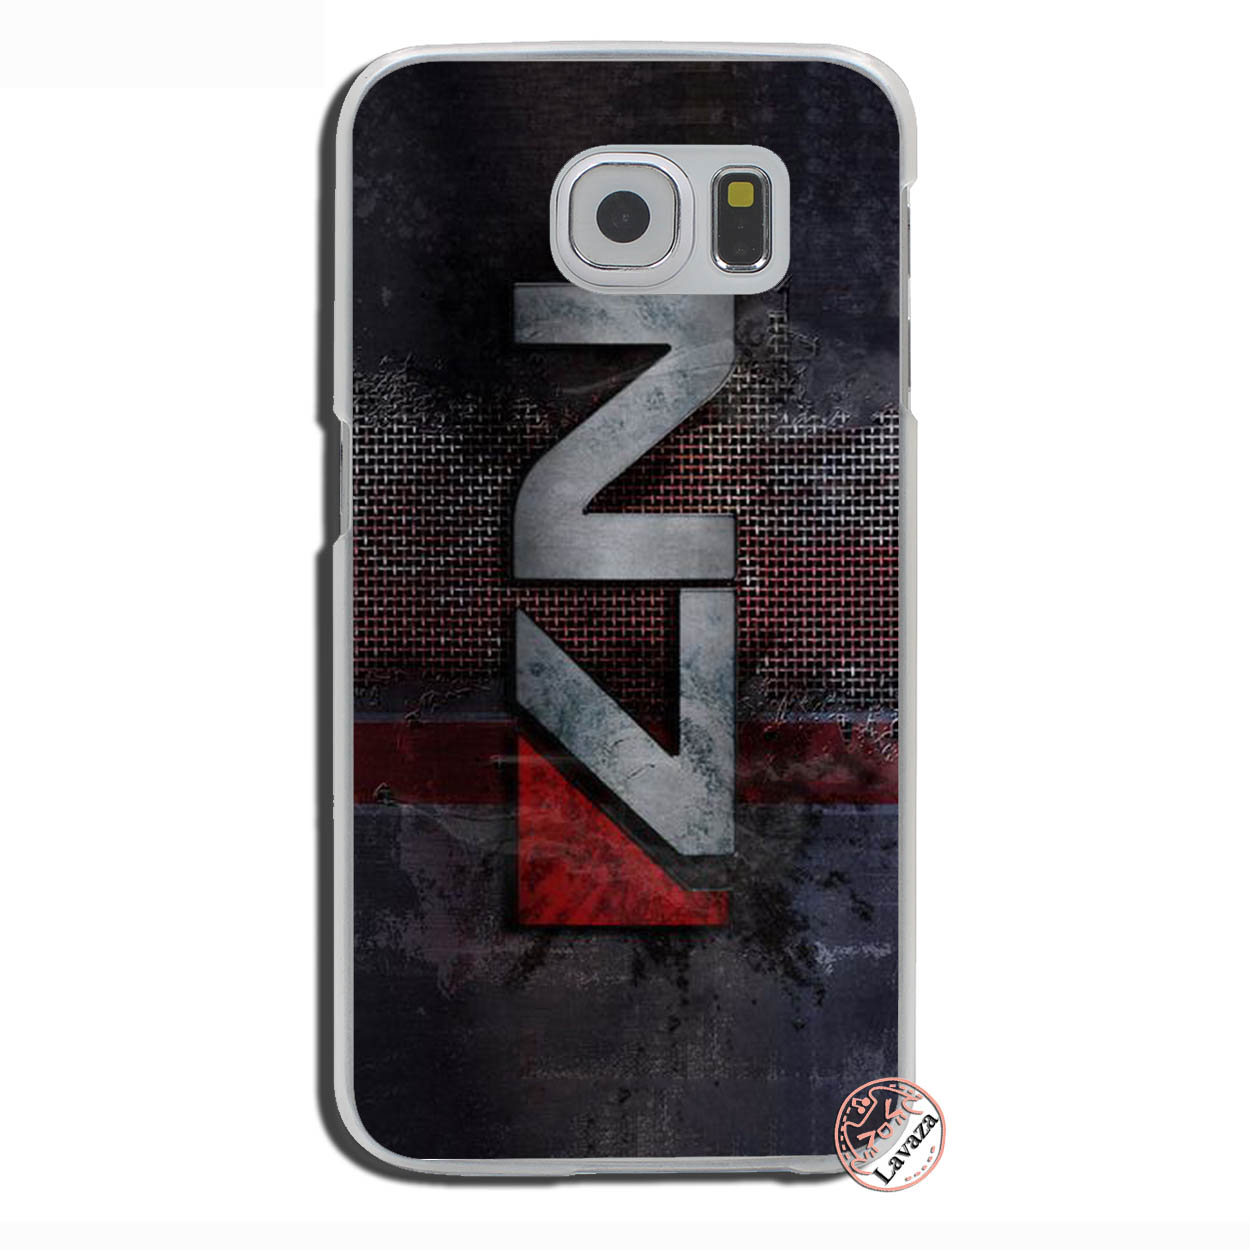 US $1 99 22% OFF|Lavaza N7 Mass Effect Hard Phone Cover Case for Samsung  Galaxy S10 E S10E S8 S9 Plus S6 S7 Edge Cases-in Half-wrapped Case from